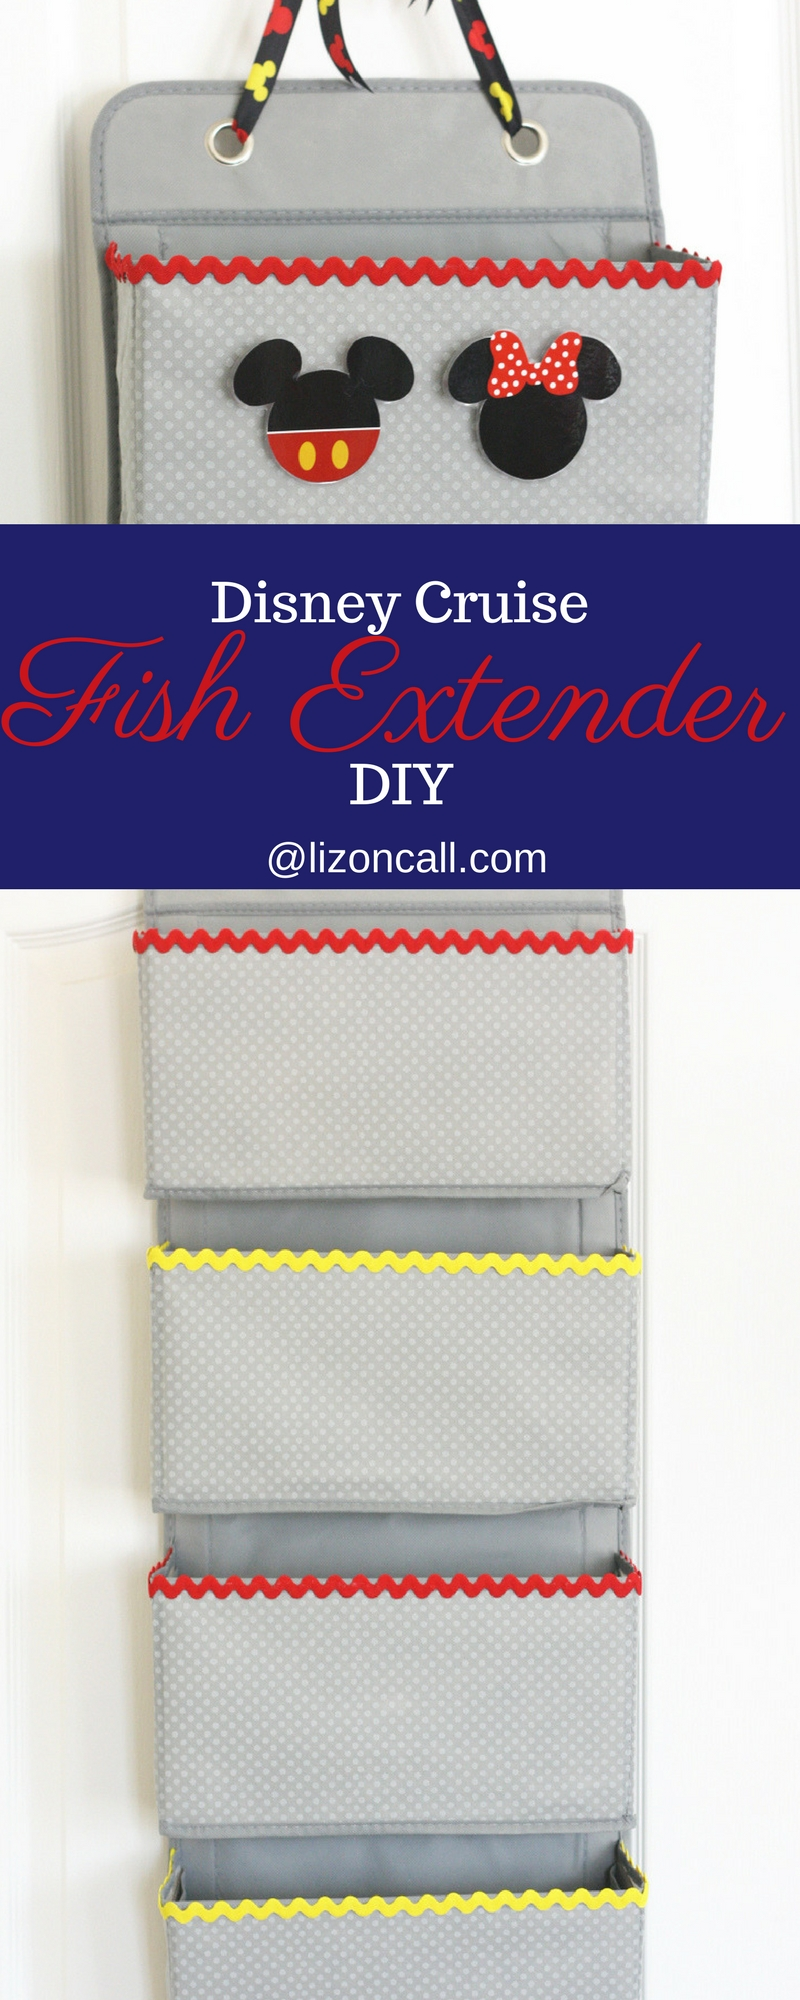 Headed on a Disney Cruise soon? Make this no sew Disney Cruise fish extender DIY to take part in some added extra magic while on board. Kids and adults love participating in the Disney Cruise Fish Extender program.#fishextenderdiy #disneycruise